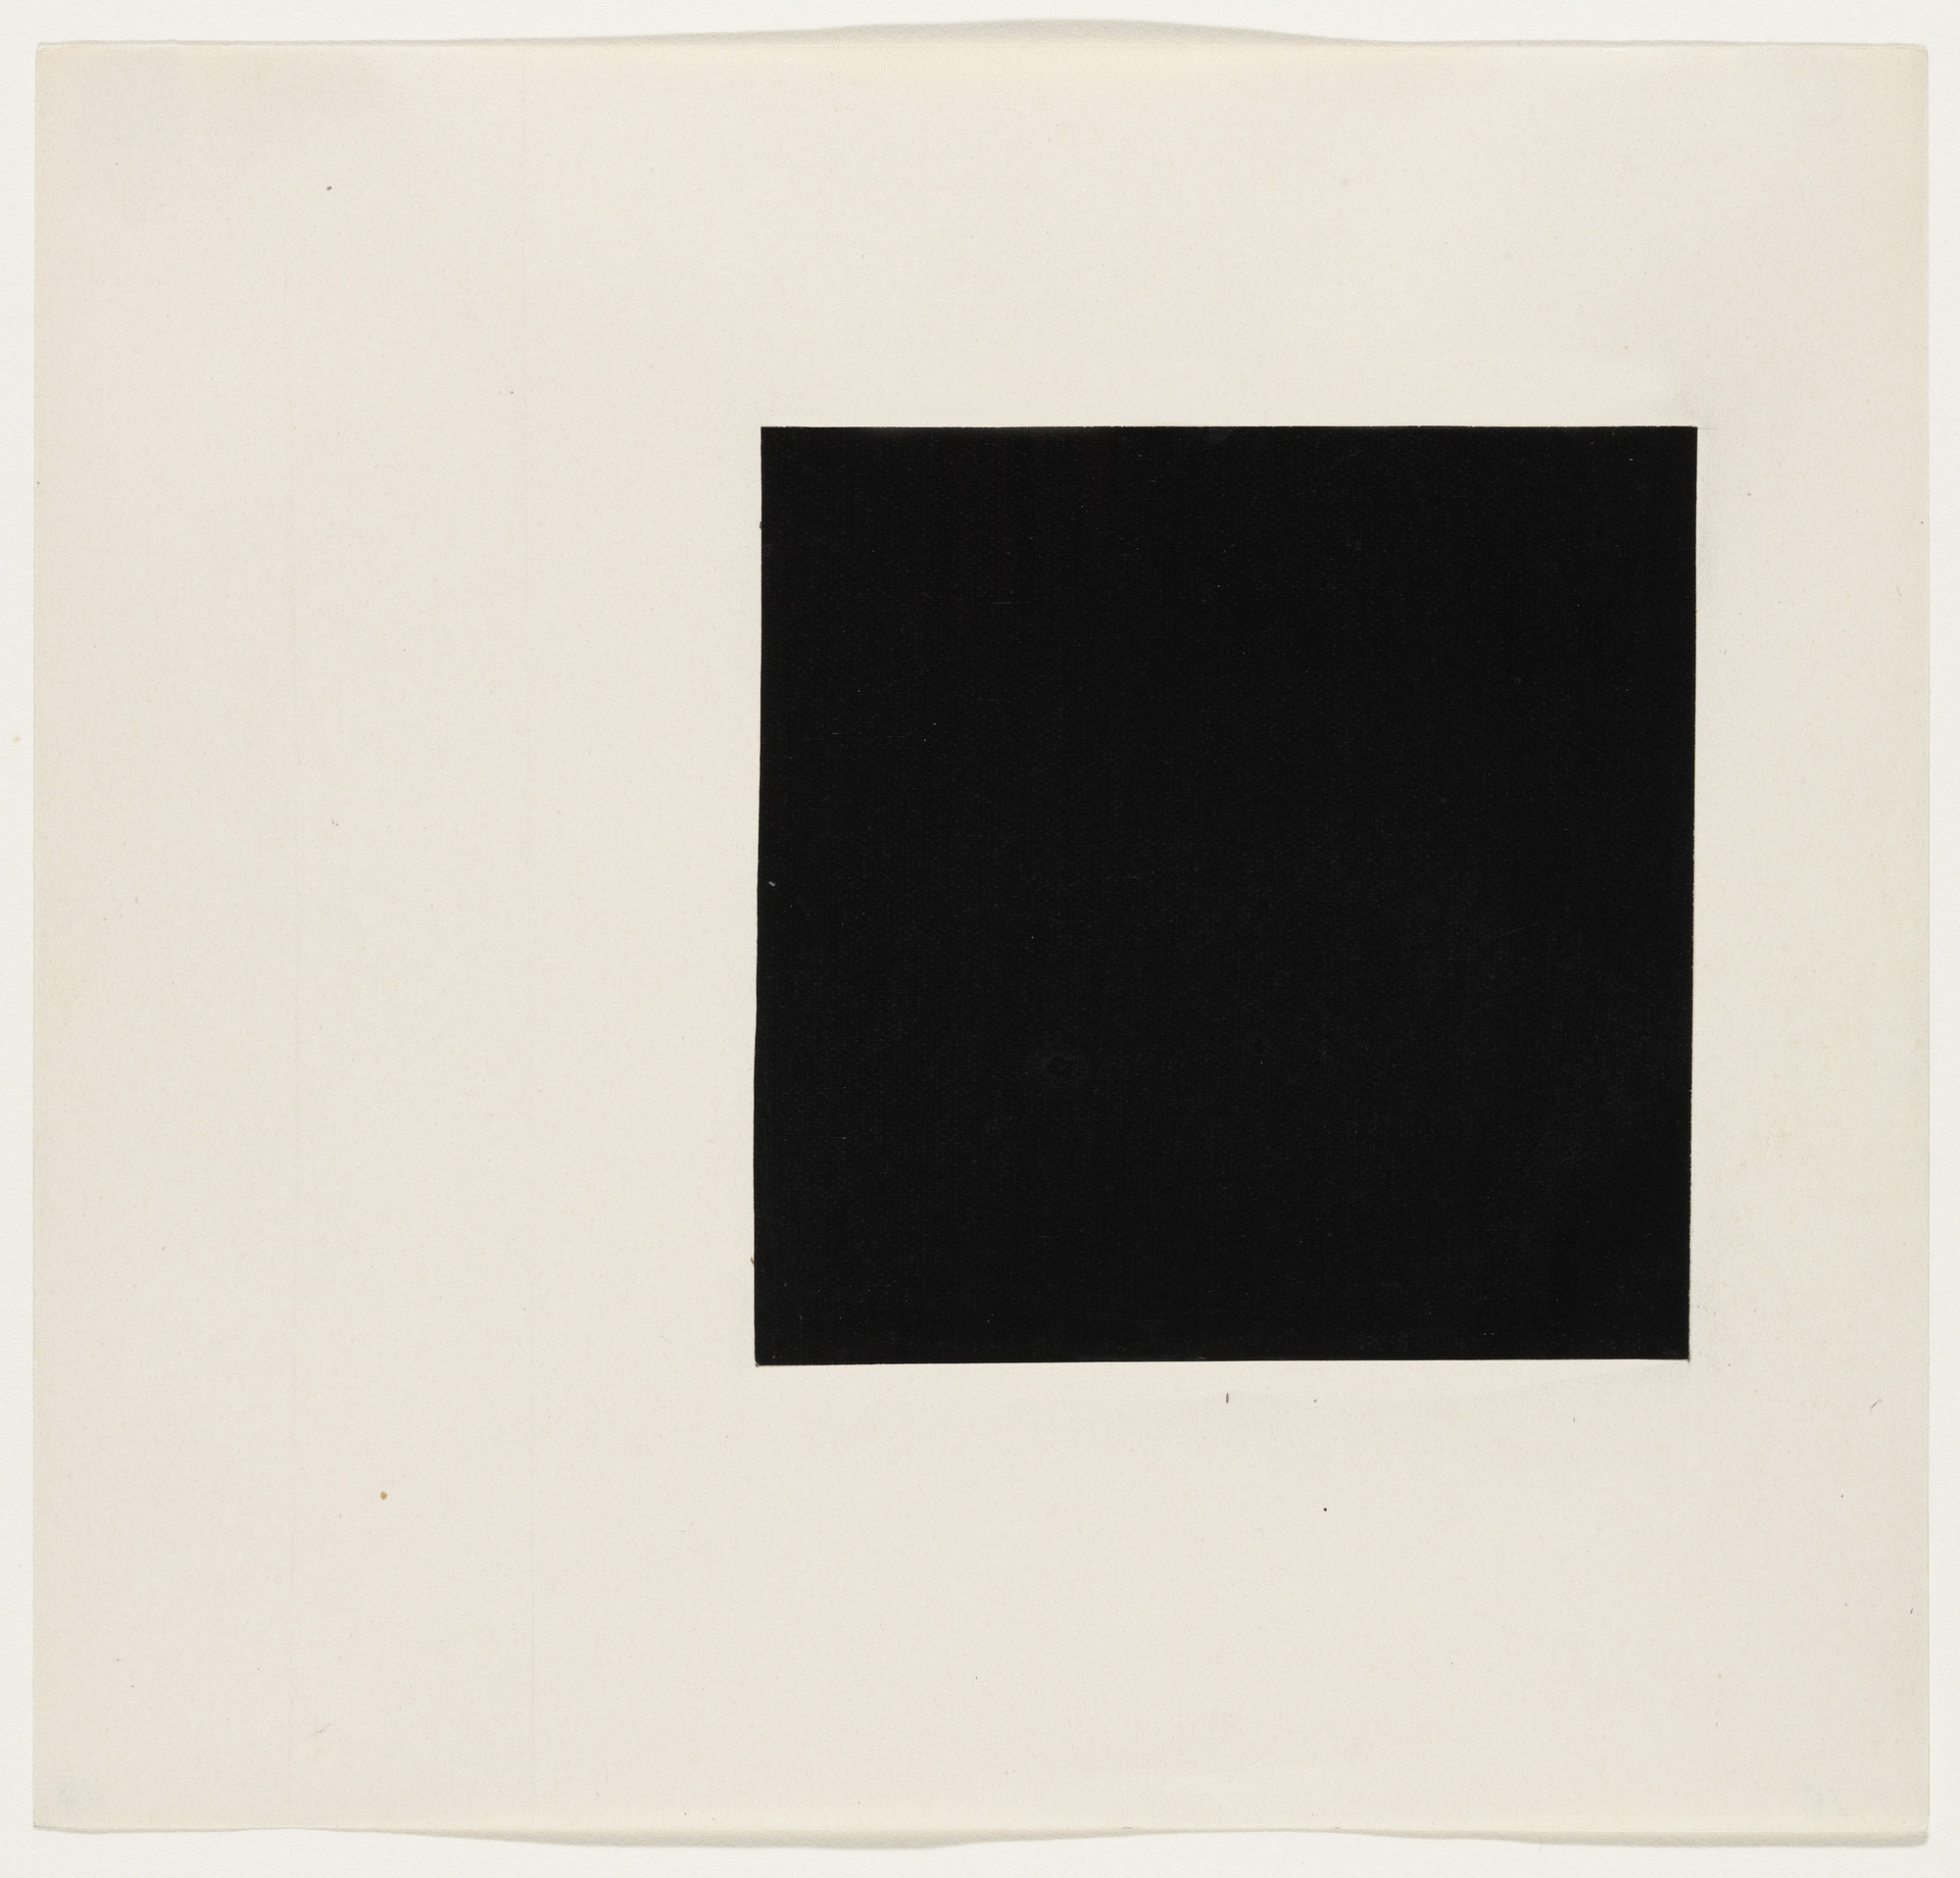 Ellsworth Kelly. Square Form. 1951